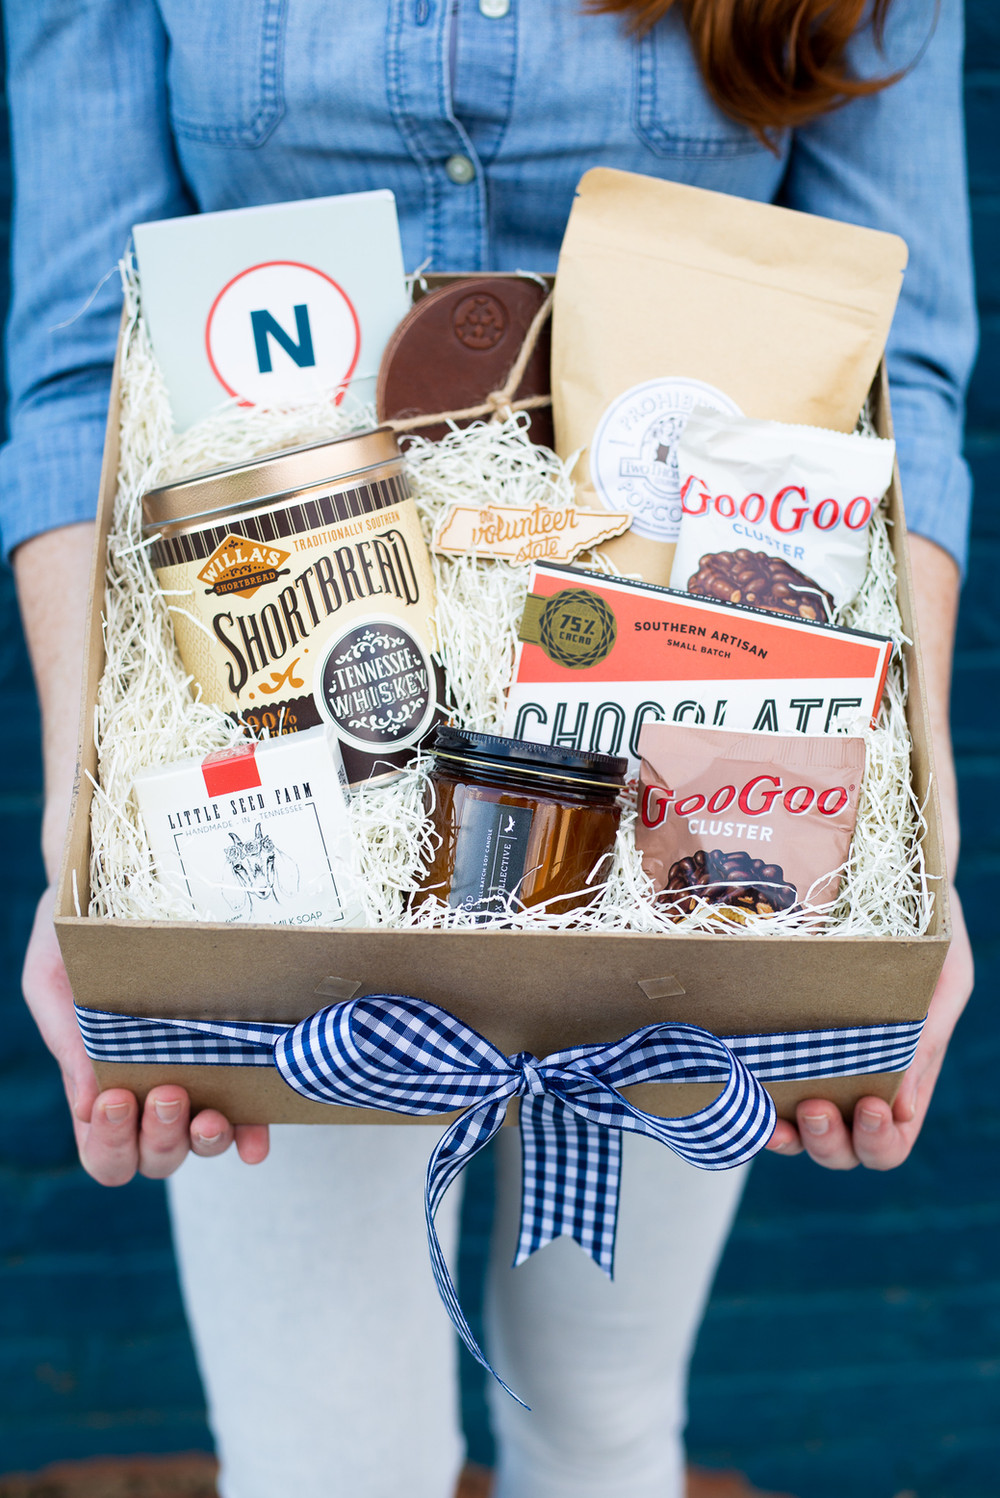 Brand photography for craft, custom gifting small business in Raleigh, NC